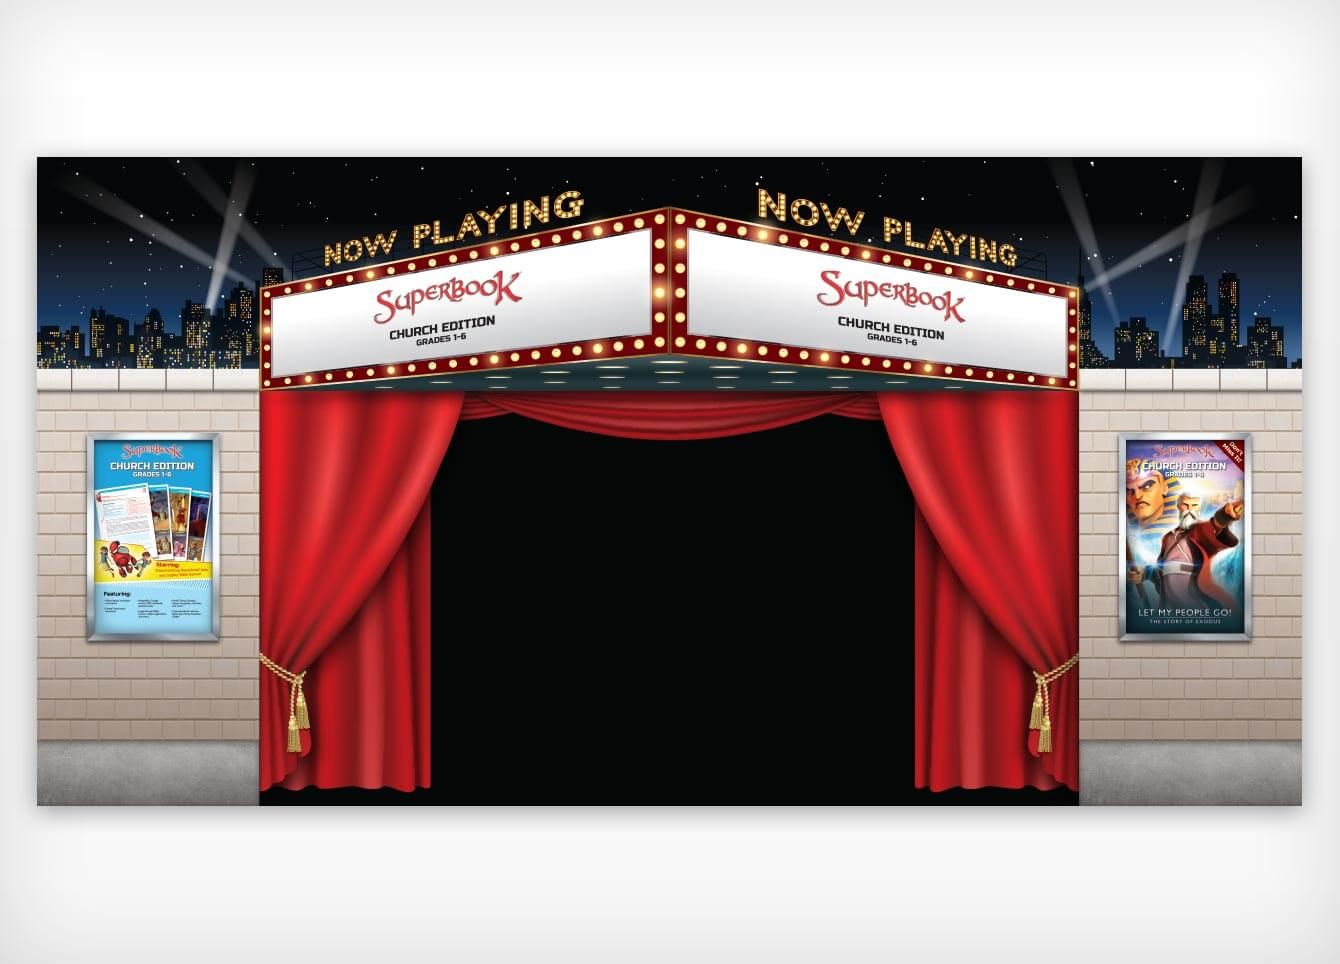 Superbook®: Church Edition – 20′ x 10′ Booth Front Design